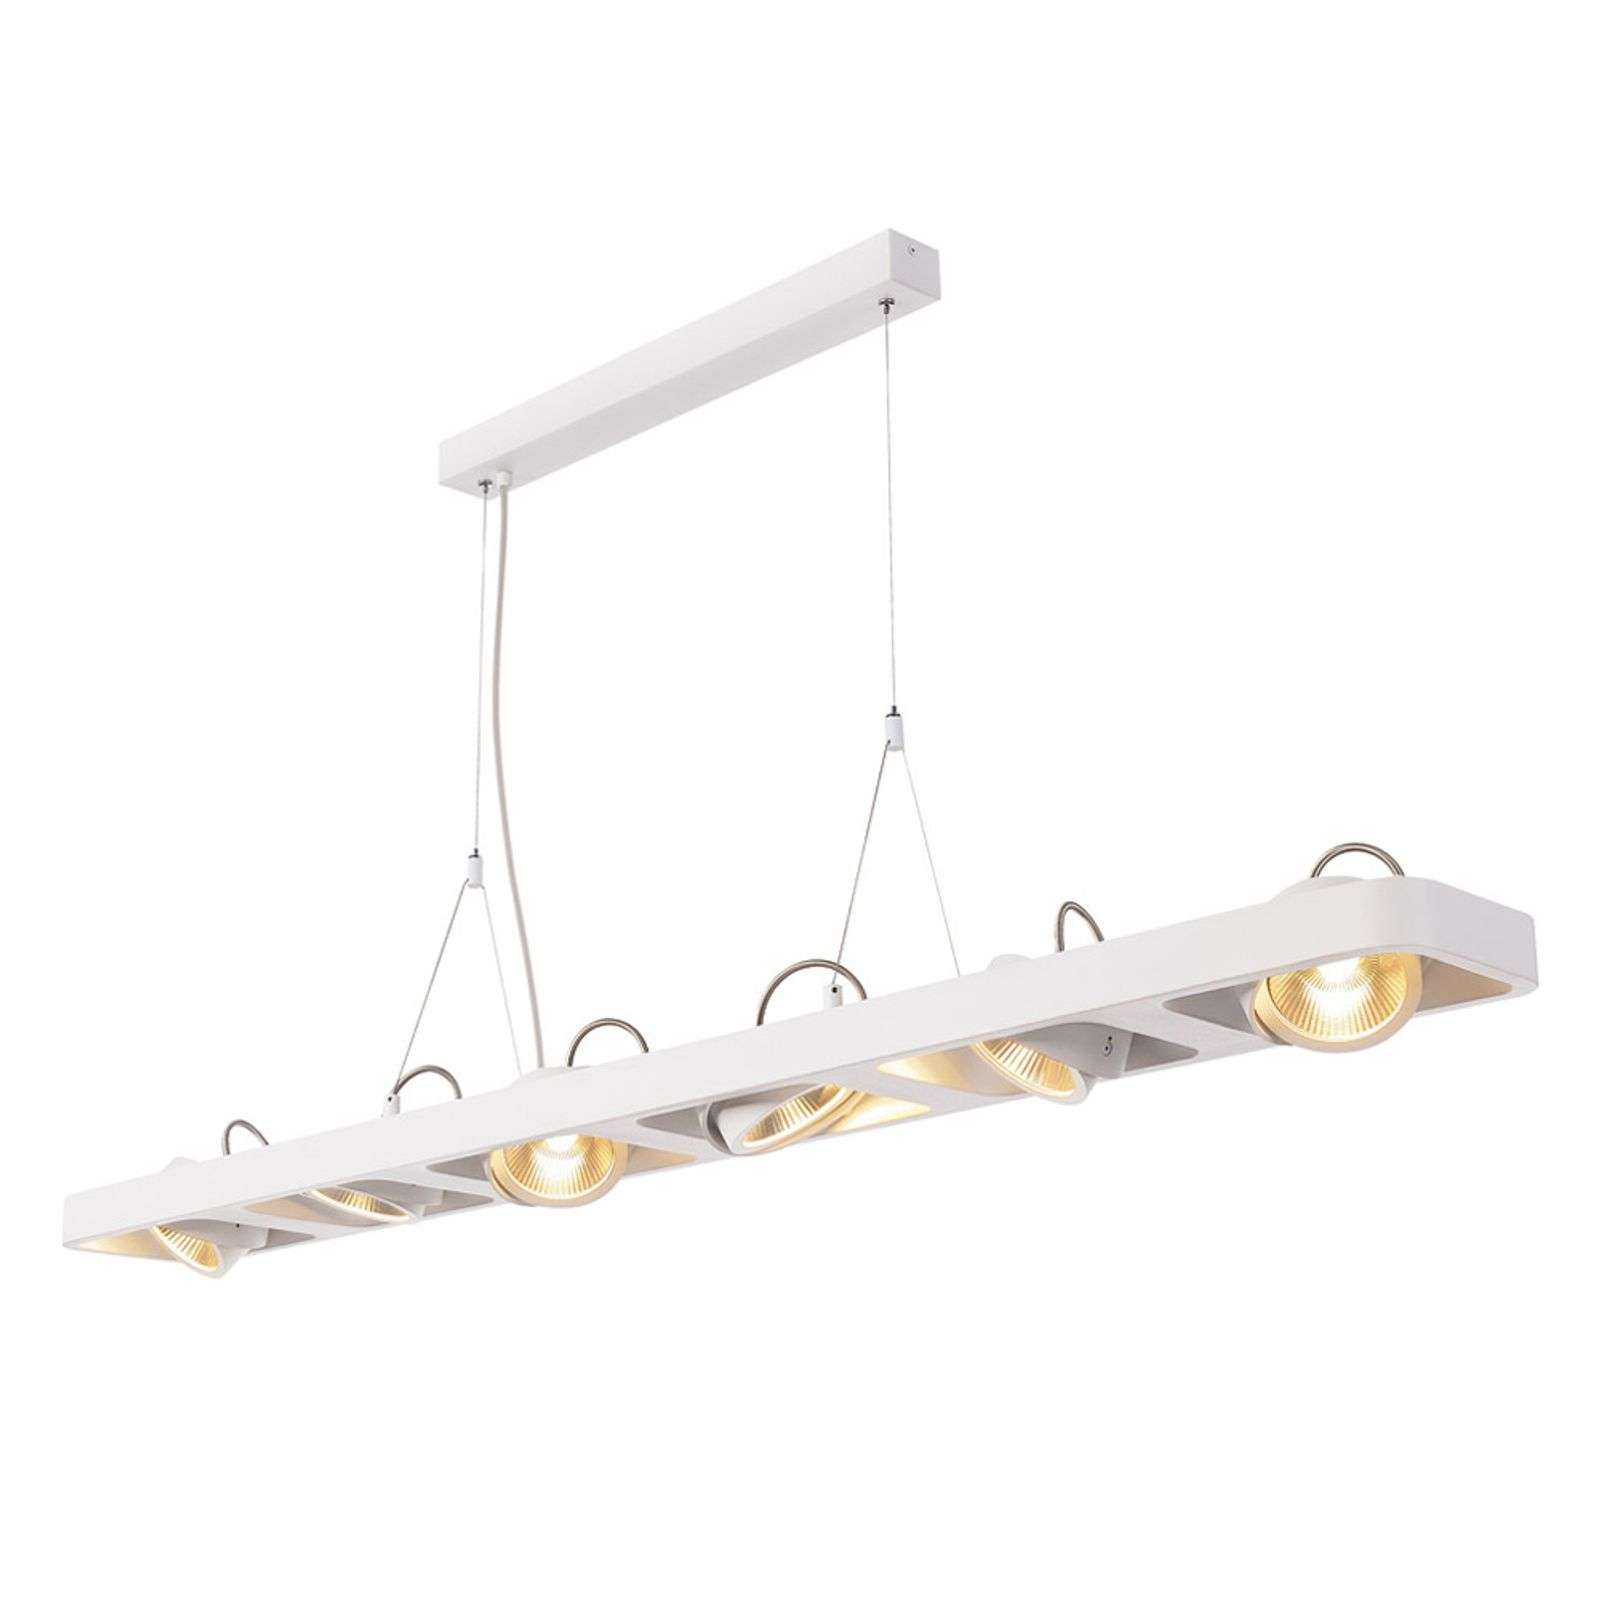 Suspension LED Lynah à six lampes, blanche